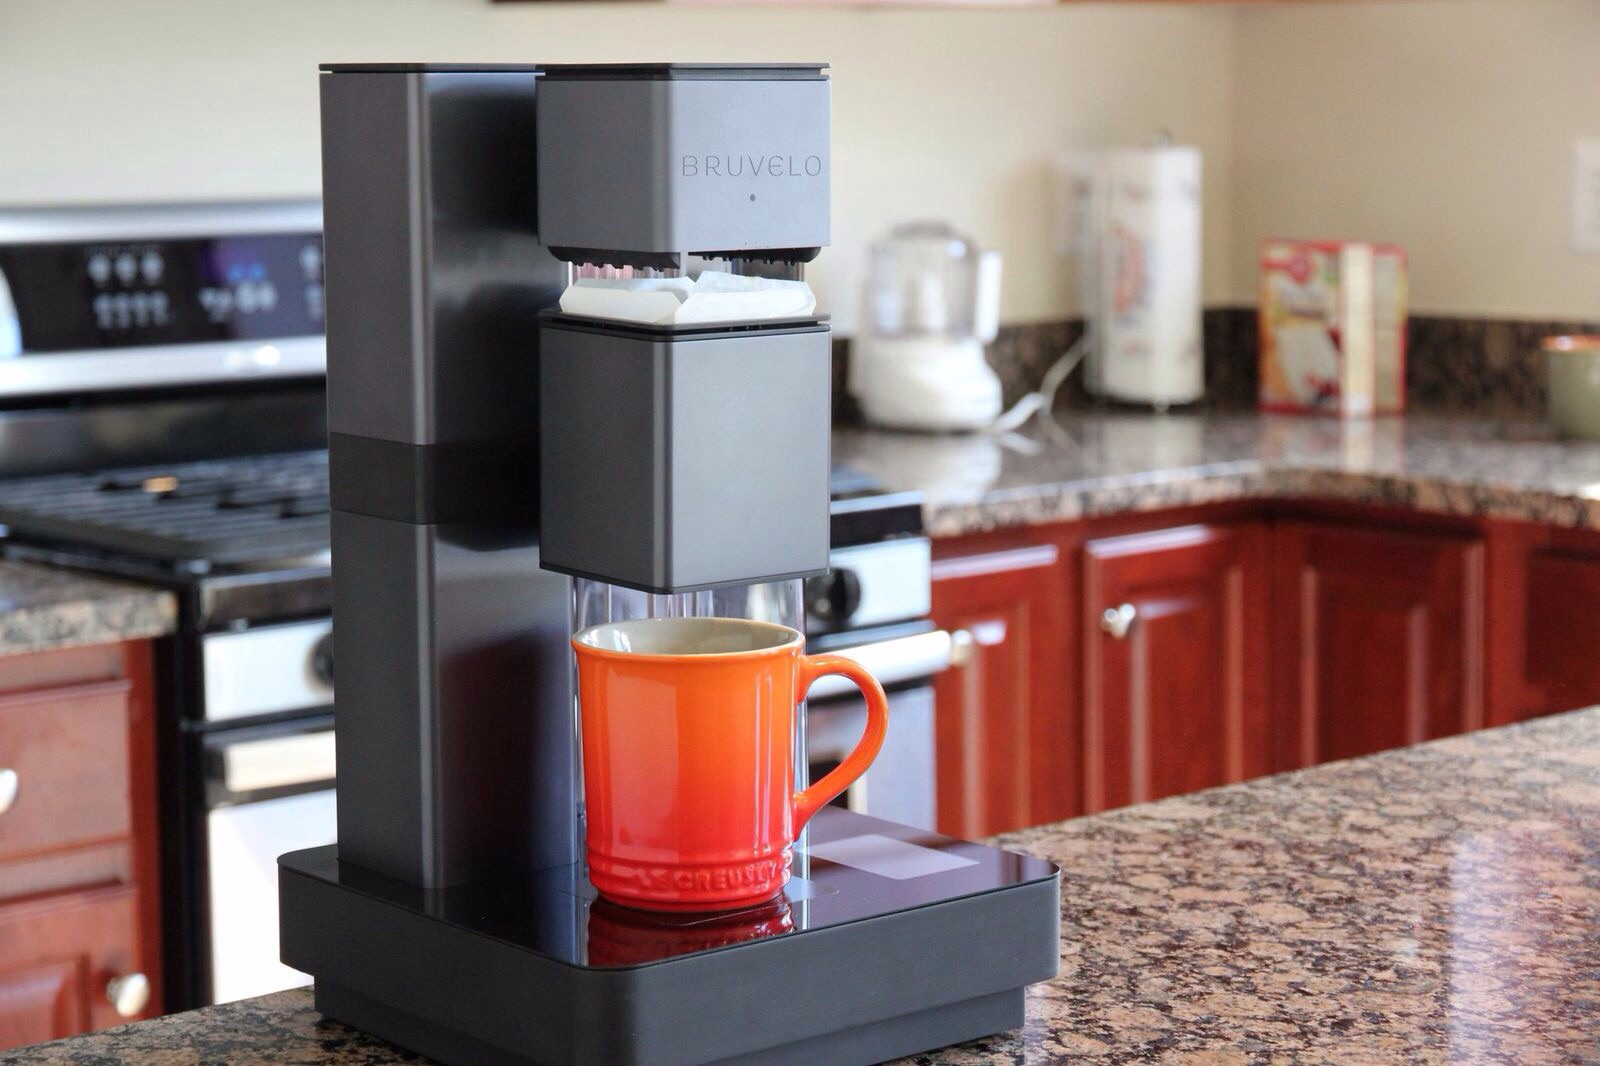 bruvelo-smart-coffee-brewer